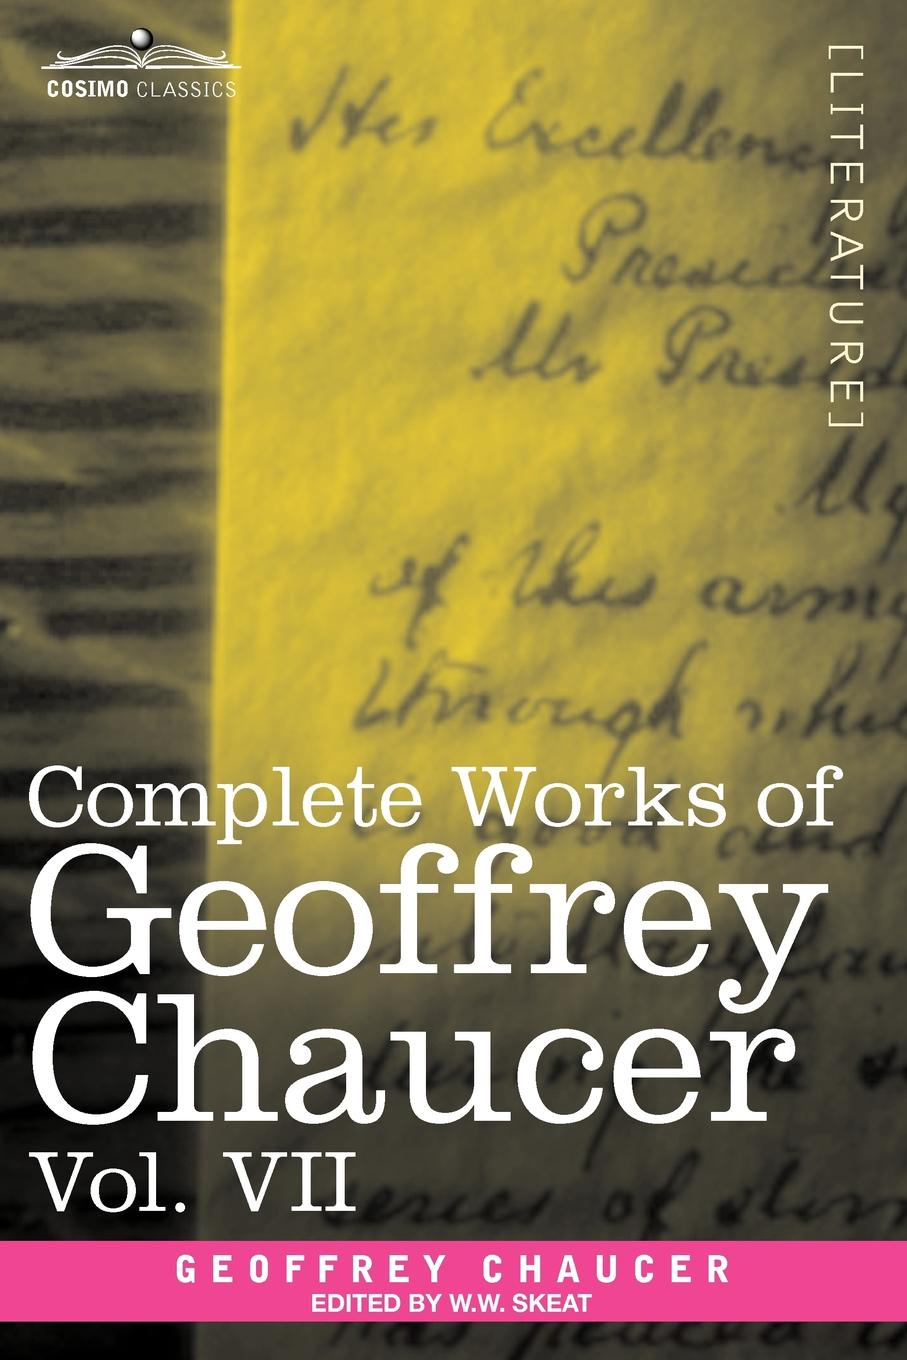 лучшая цена Geoffrey Chaucer Complete Works of Geoffrey Chaucer, Vol. VII. Chaucerian and Other Pieces, Being a Supplement to the Complete Works of Geoffrey Chaucer (in Seven Volu